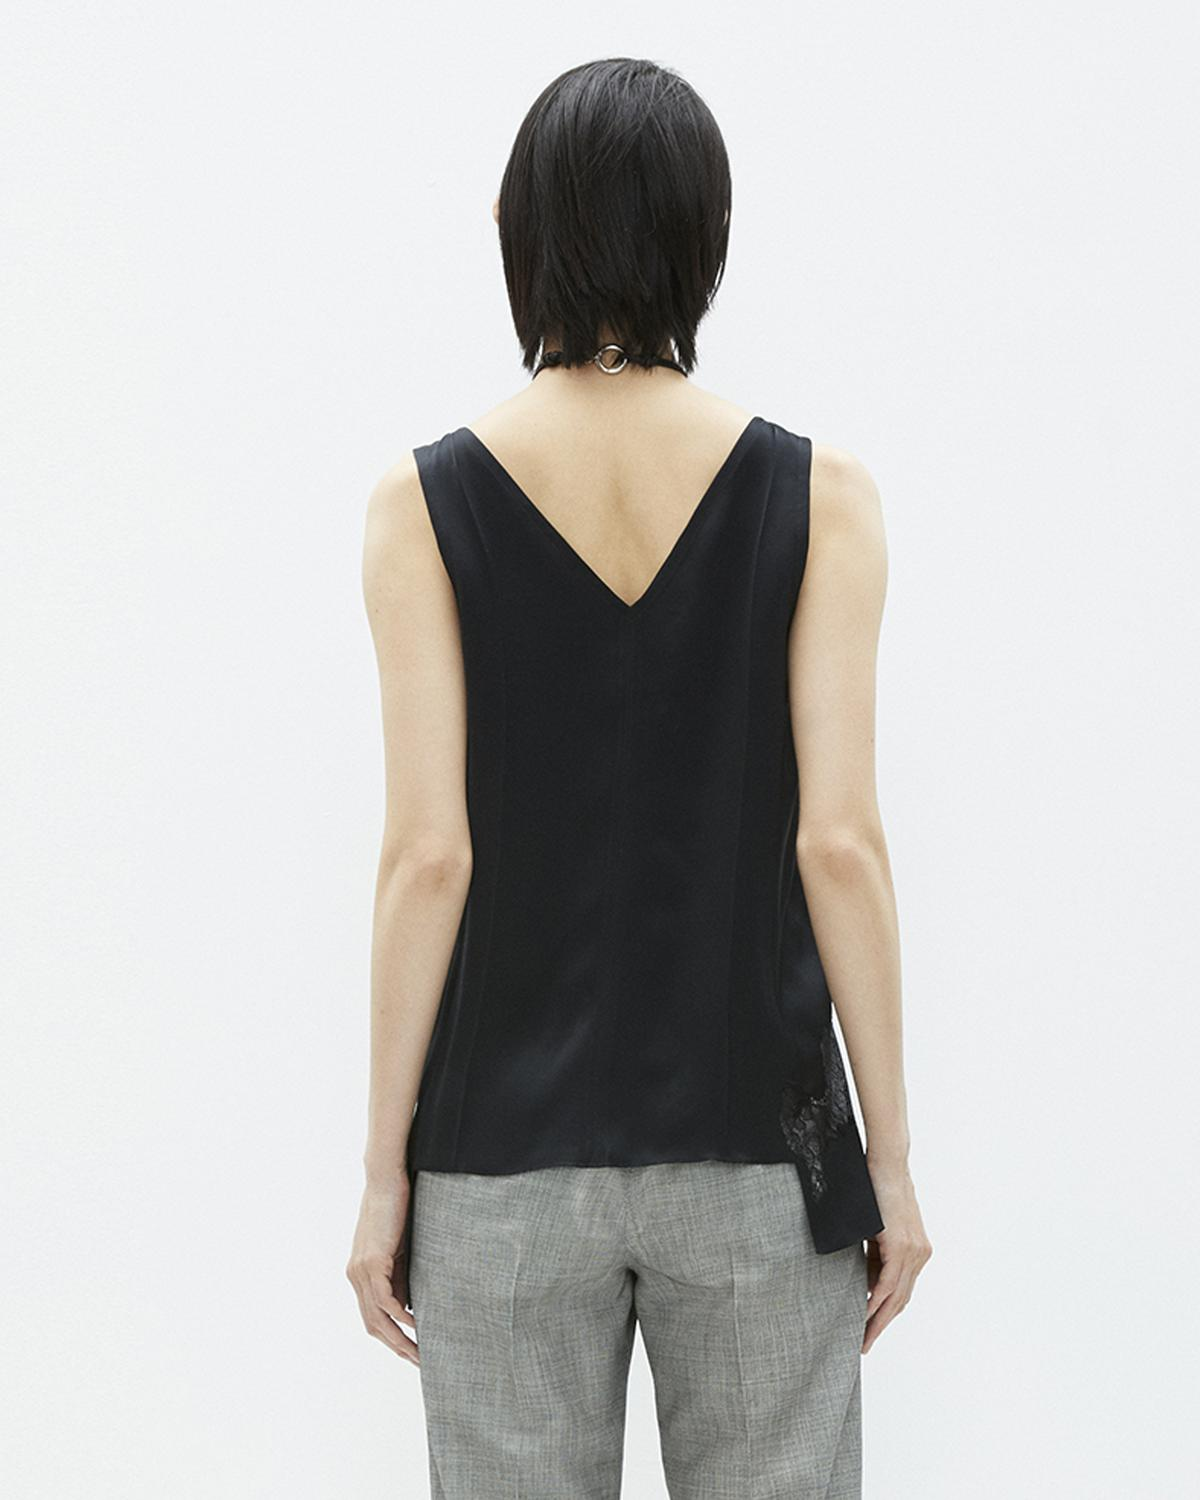 DECONSTRUCTED SLIP TOP